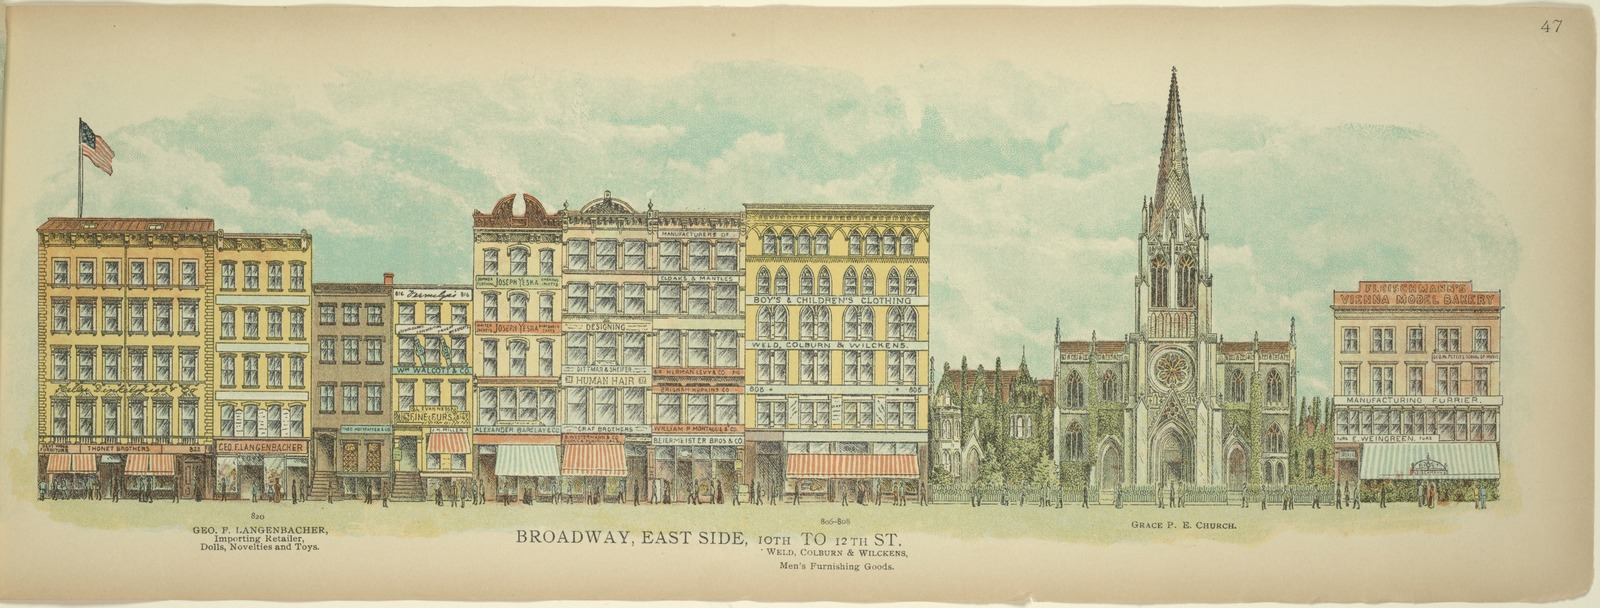 Broadway, East Side. 8th to 10th St. (1889)